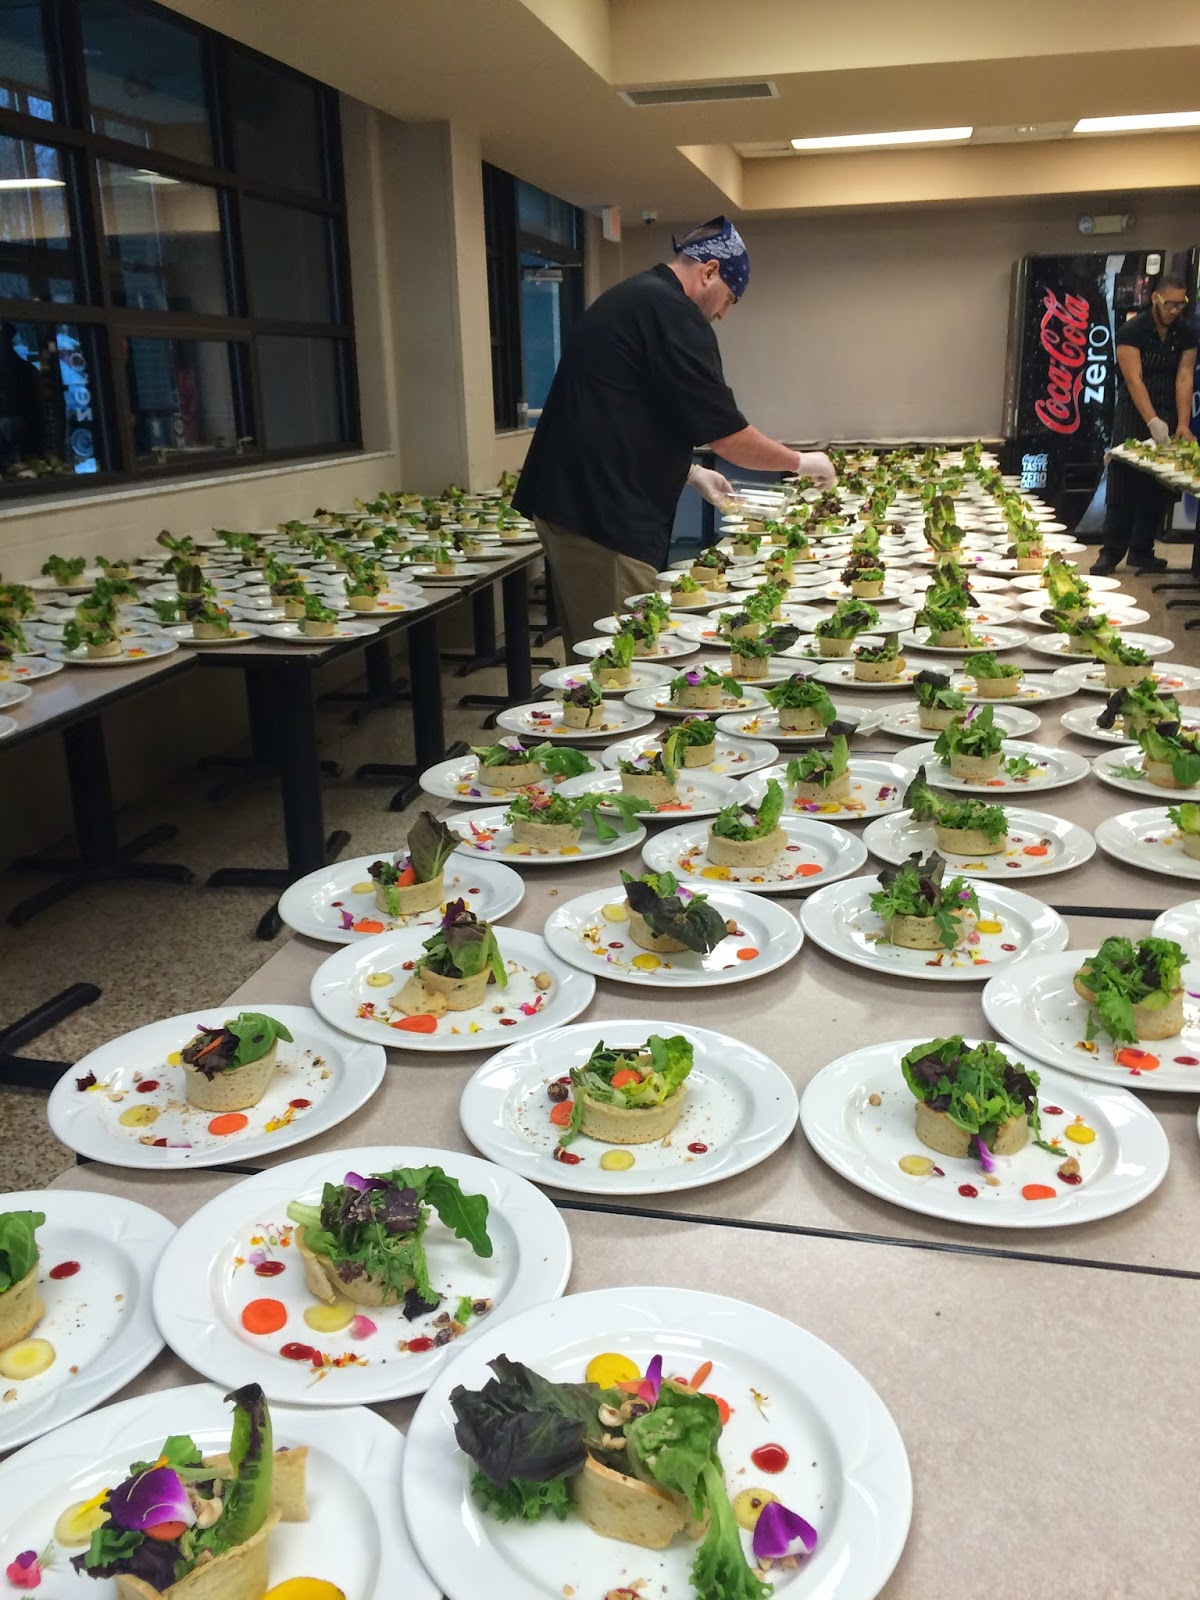 catering high school and caterer High school theme lunch : royal catering is an approved caterer for most dallas/fort worth area school districts our special discounted school catering menu packages include everything for a successful and memorable event.